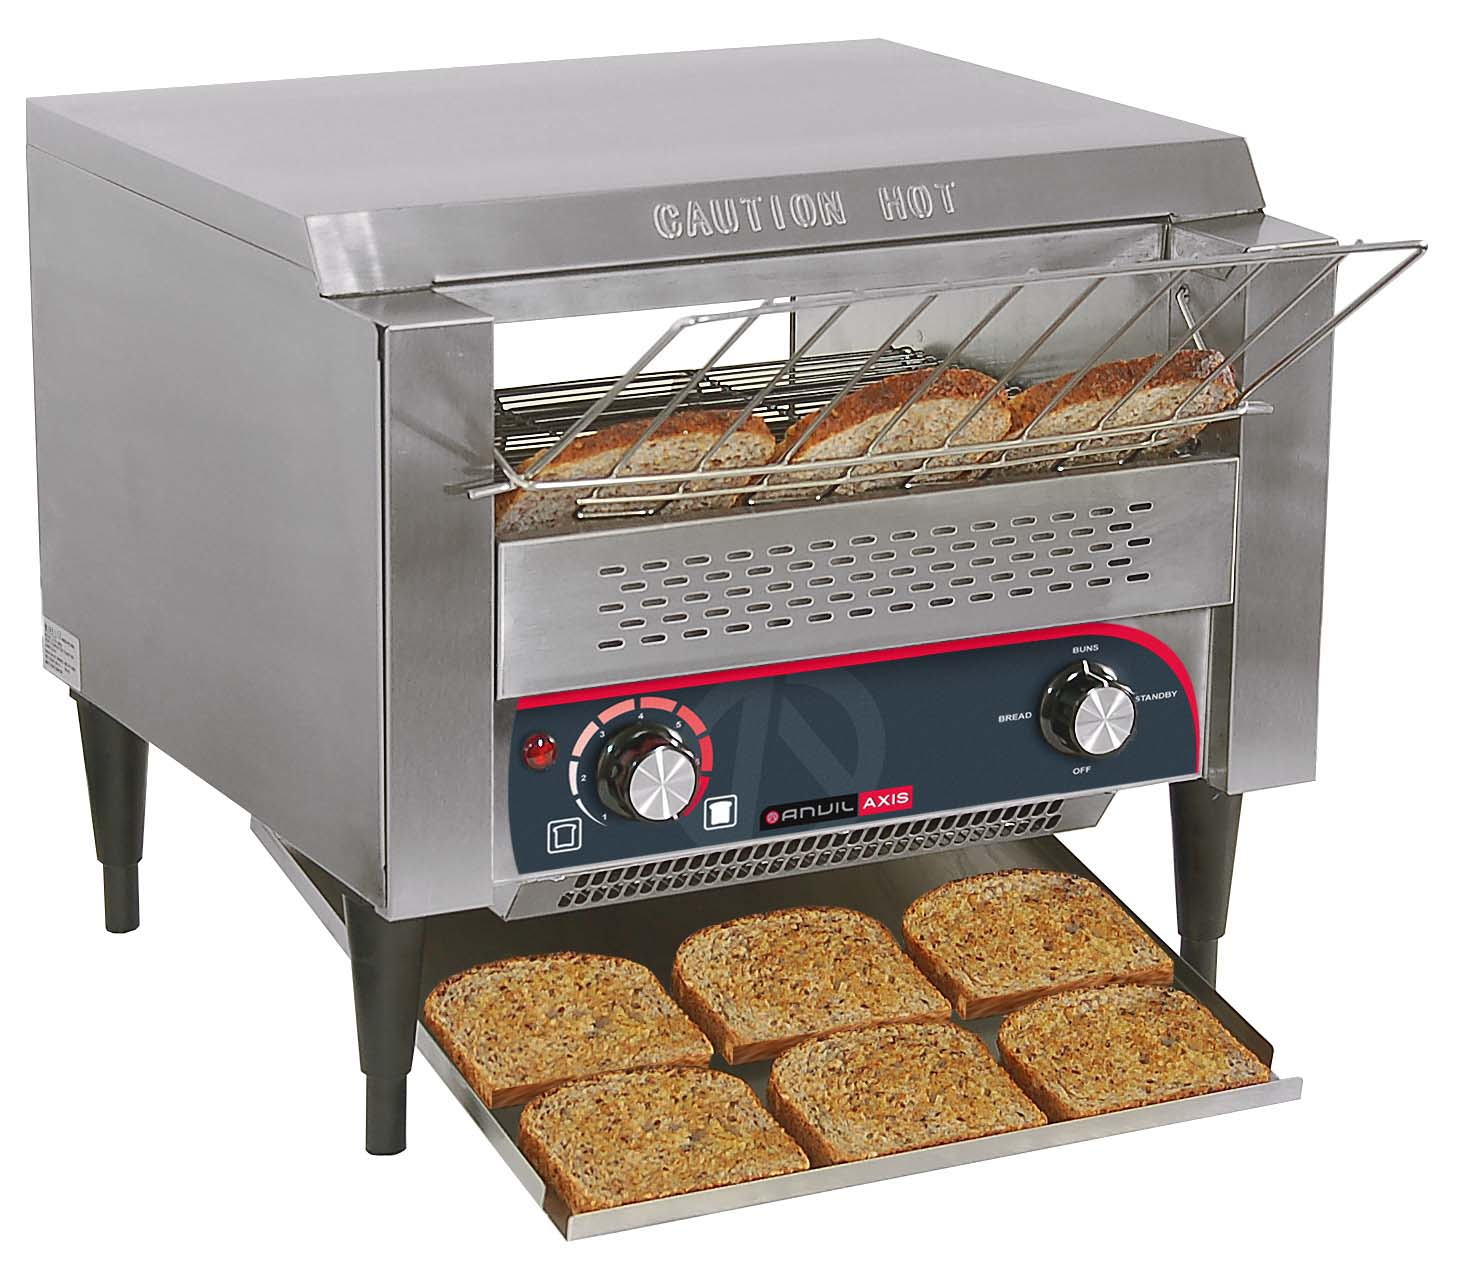 ctk2002--conveyor-toaster-anvil--wide-mouth